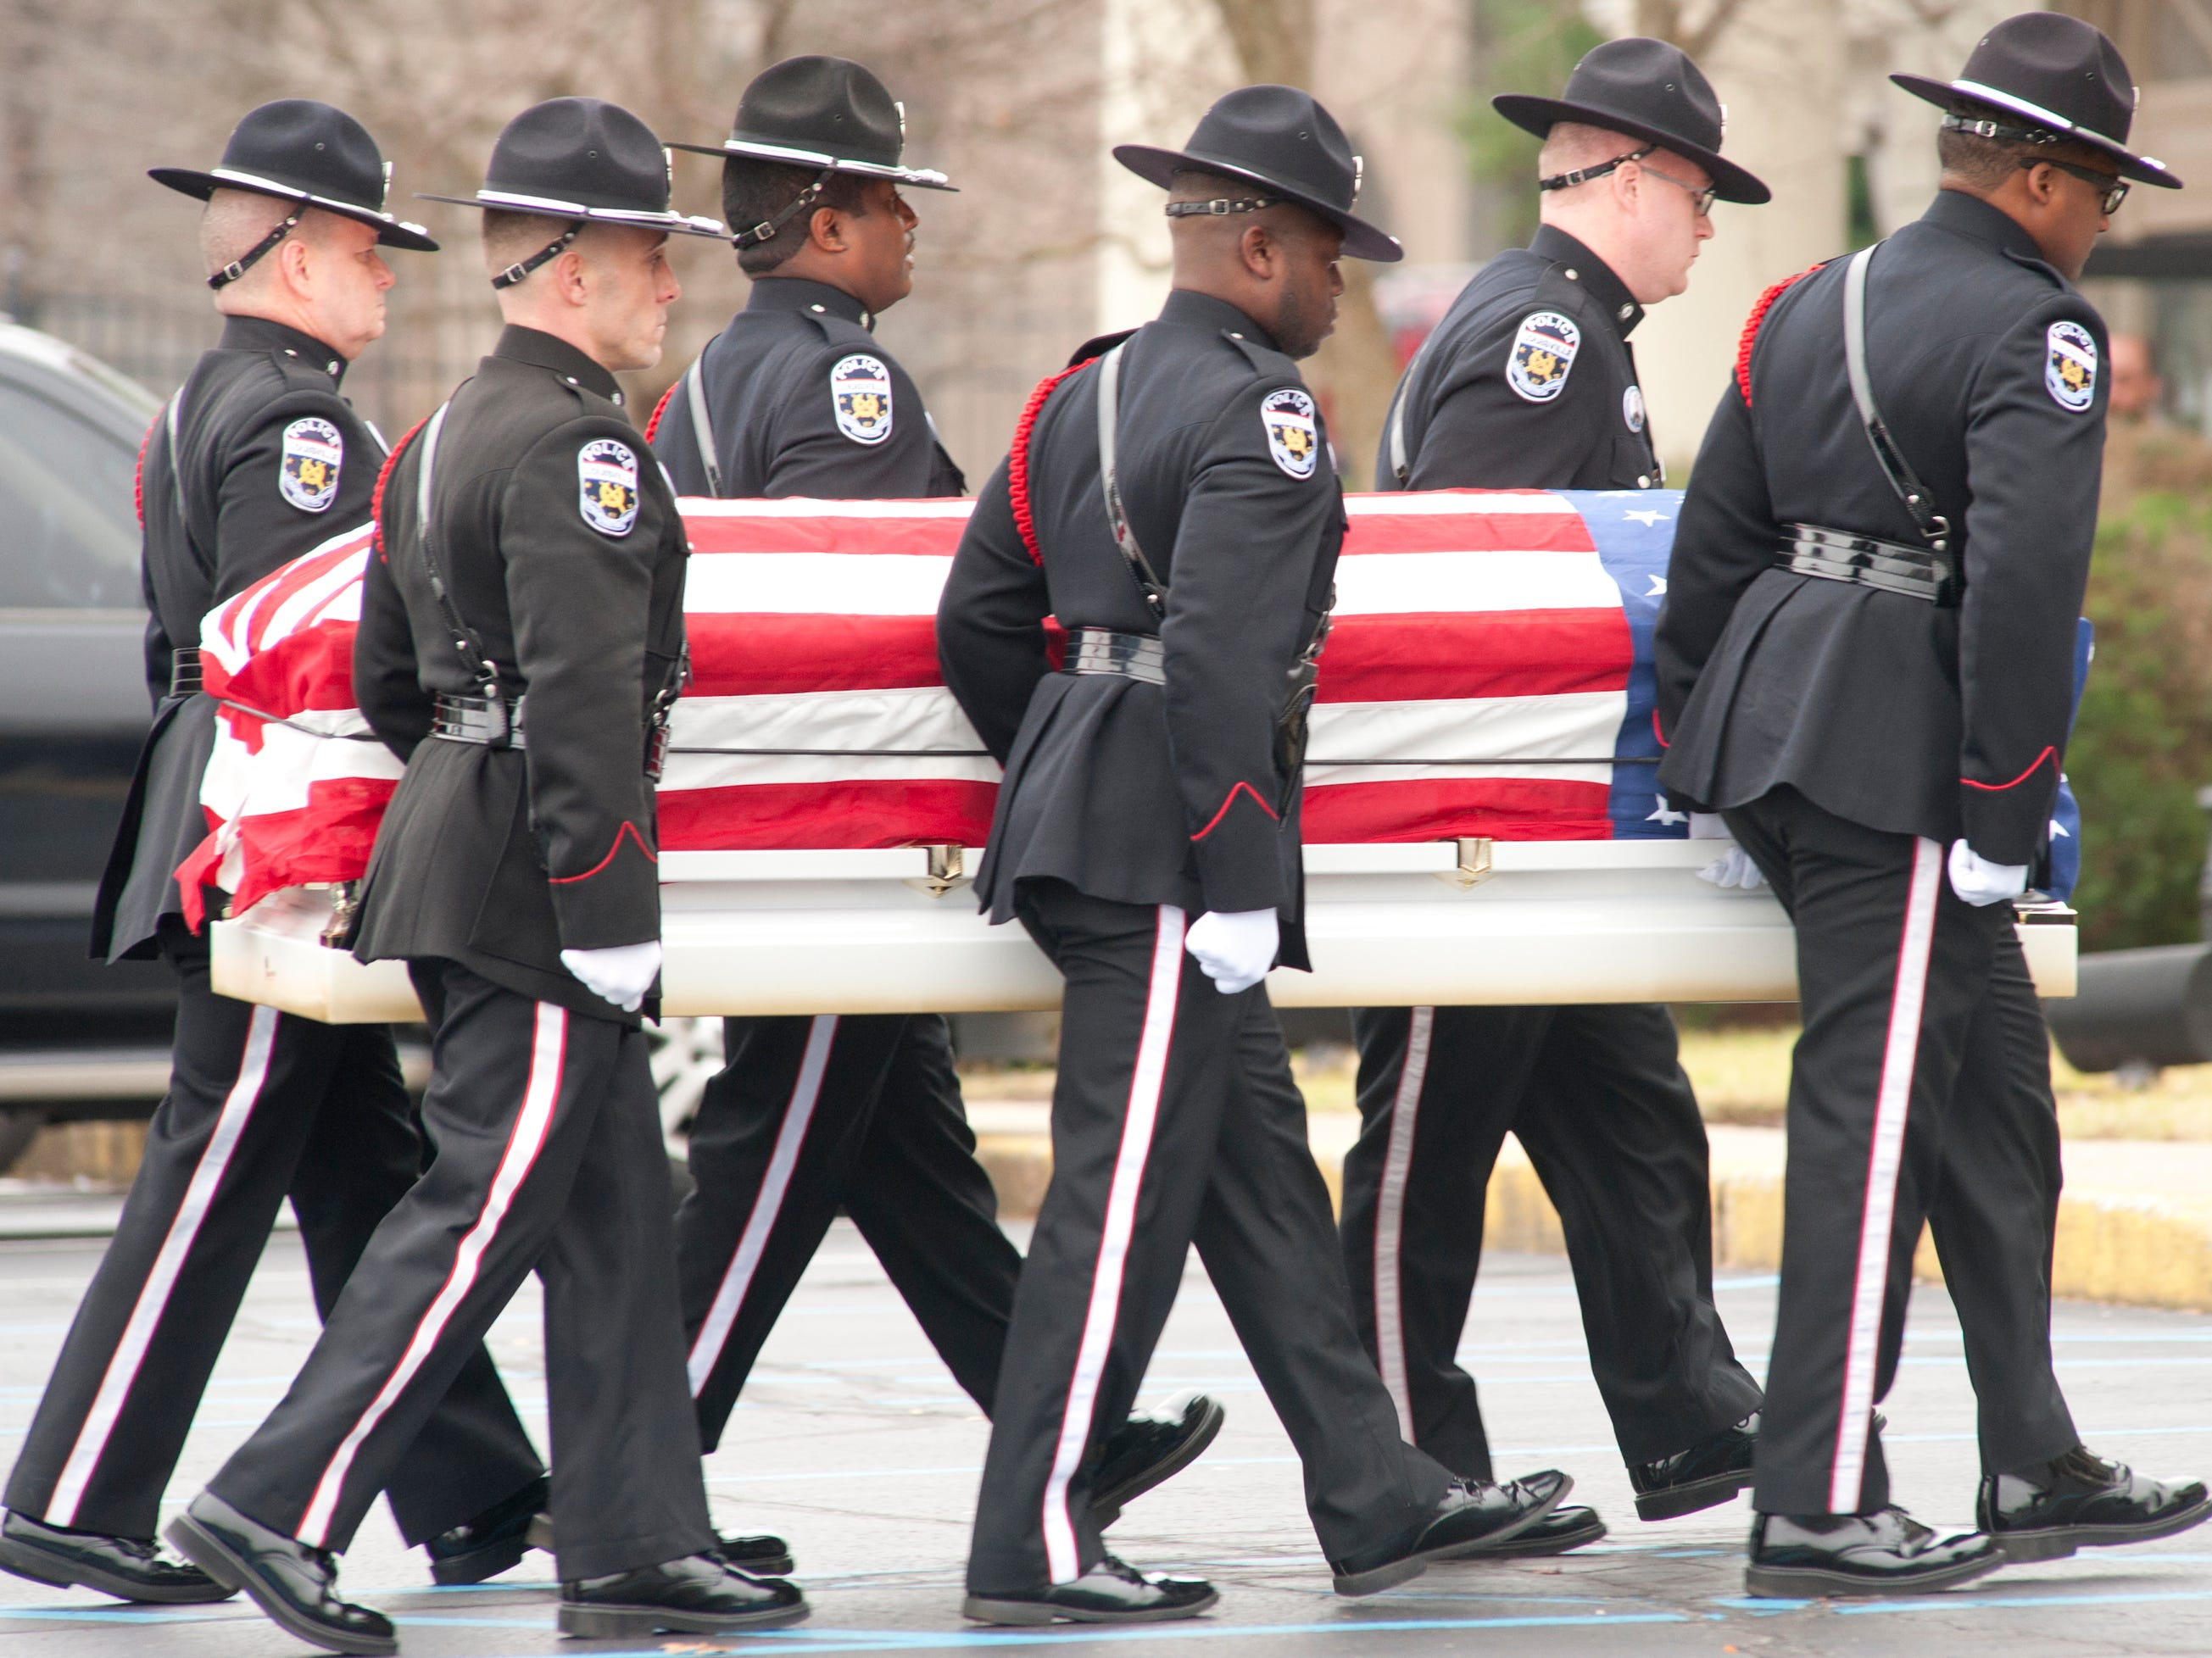 The LMPD Honor Guard slowly carries the casket of LMPD Detective Deidre Mengedoht into the Resthaven Funeral Home on Bardstown Road.